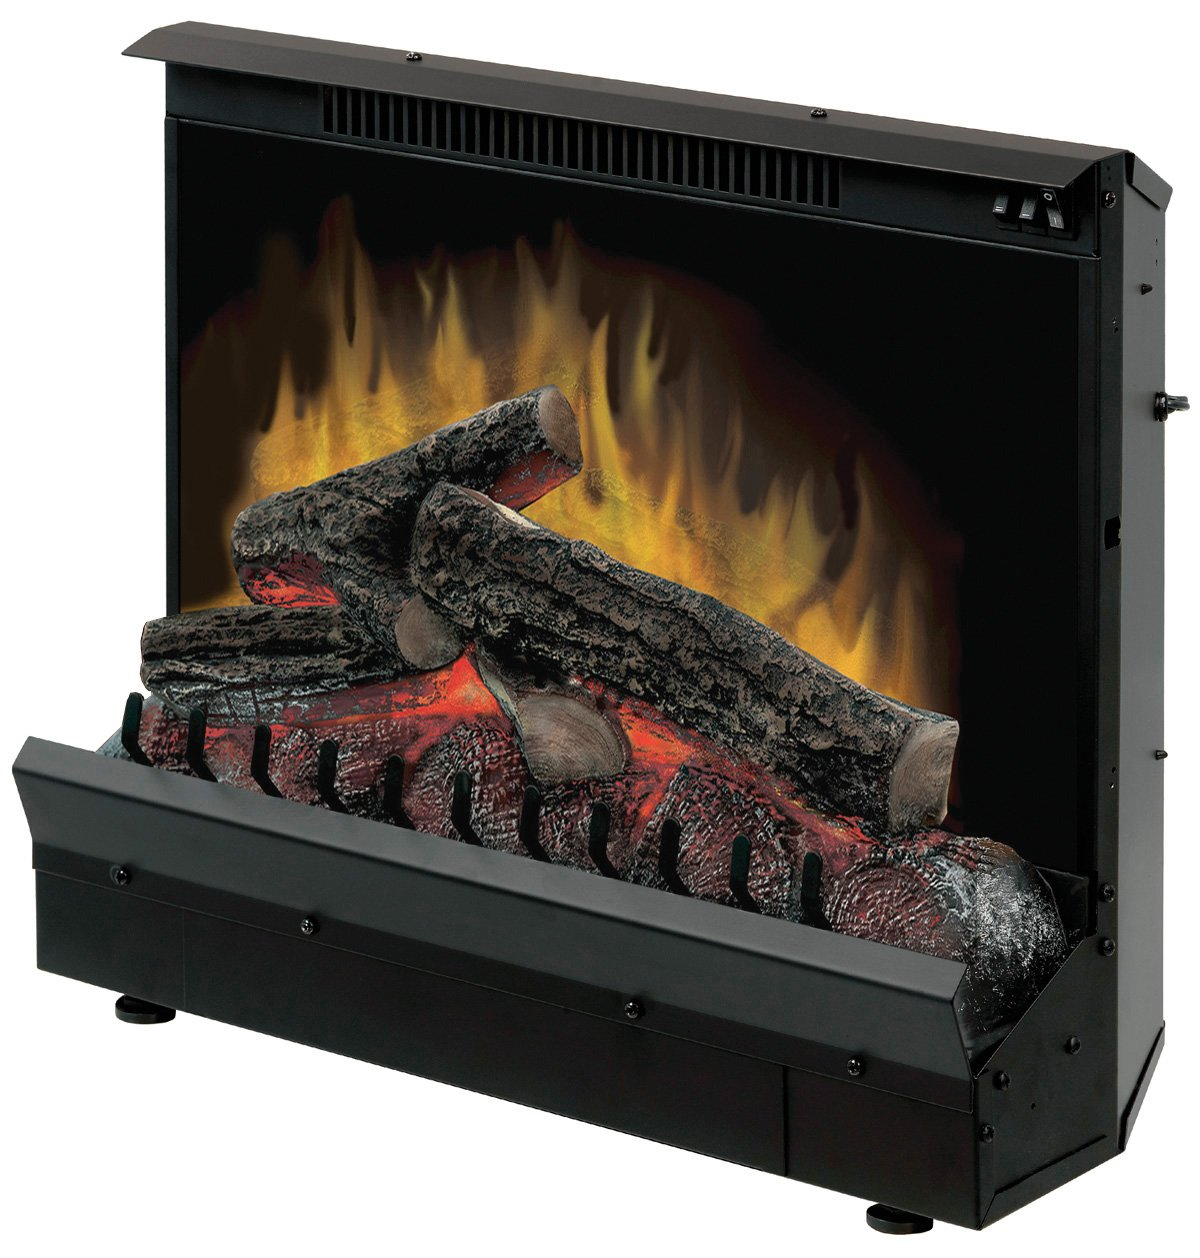 Amazon.com: DIMPLEX NORTH AMERICA Black Finish Electric Fireplace Heater  Insert: Home & Kitchen